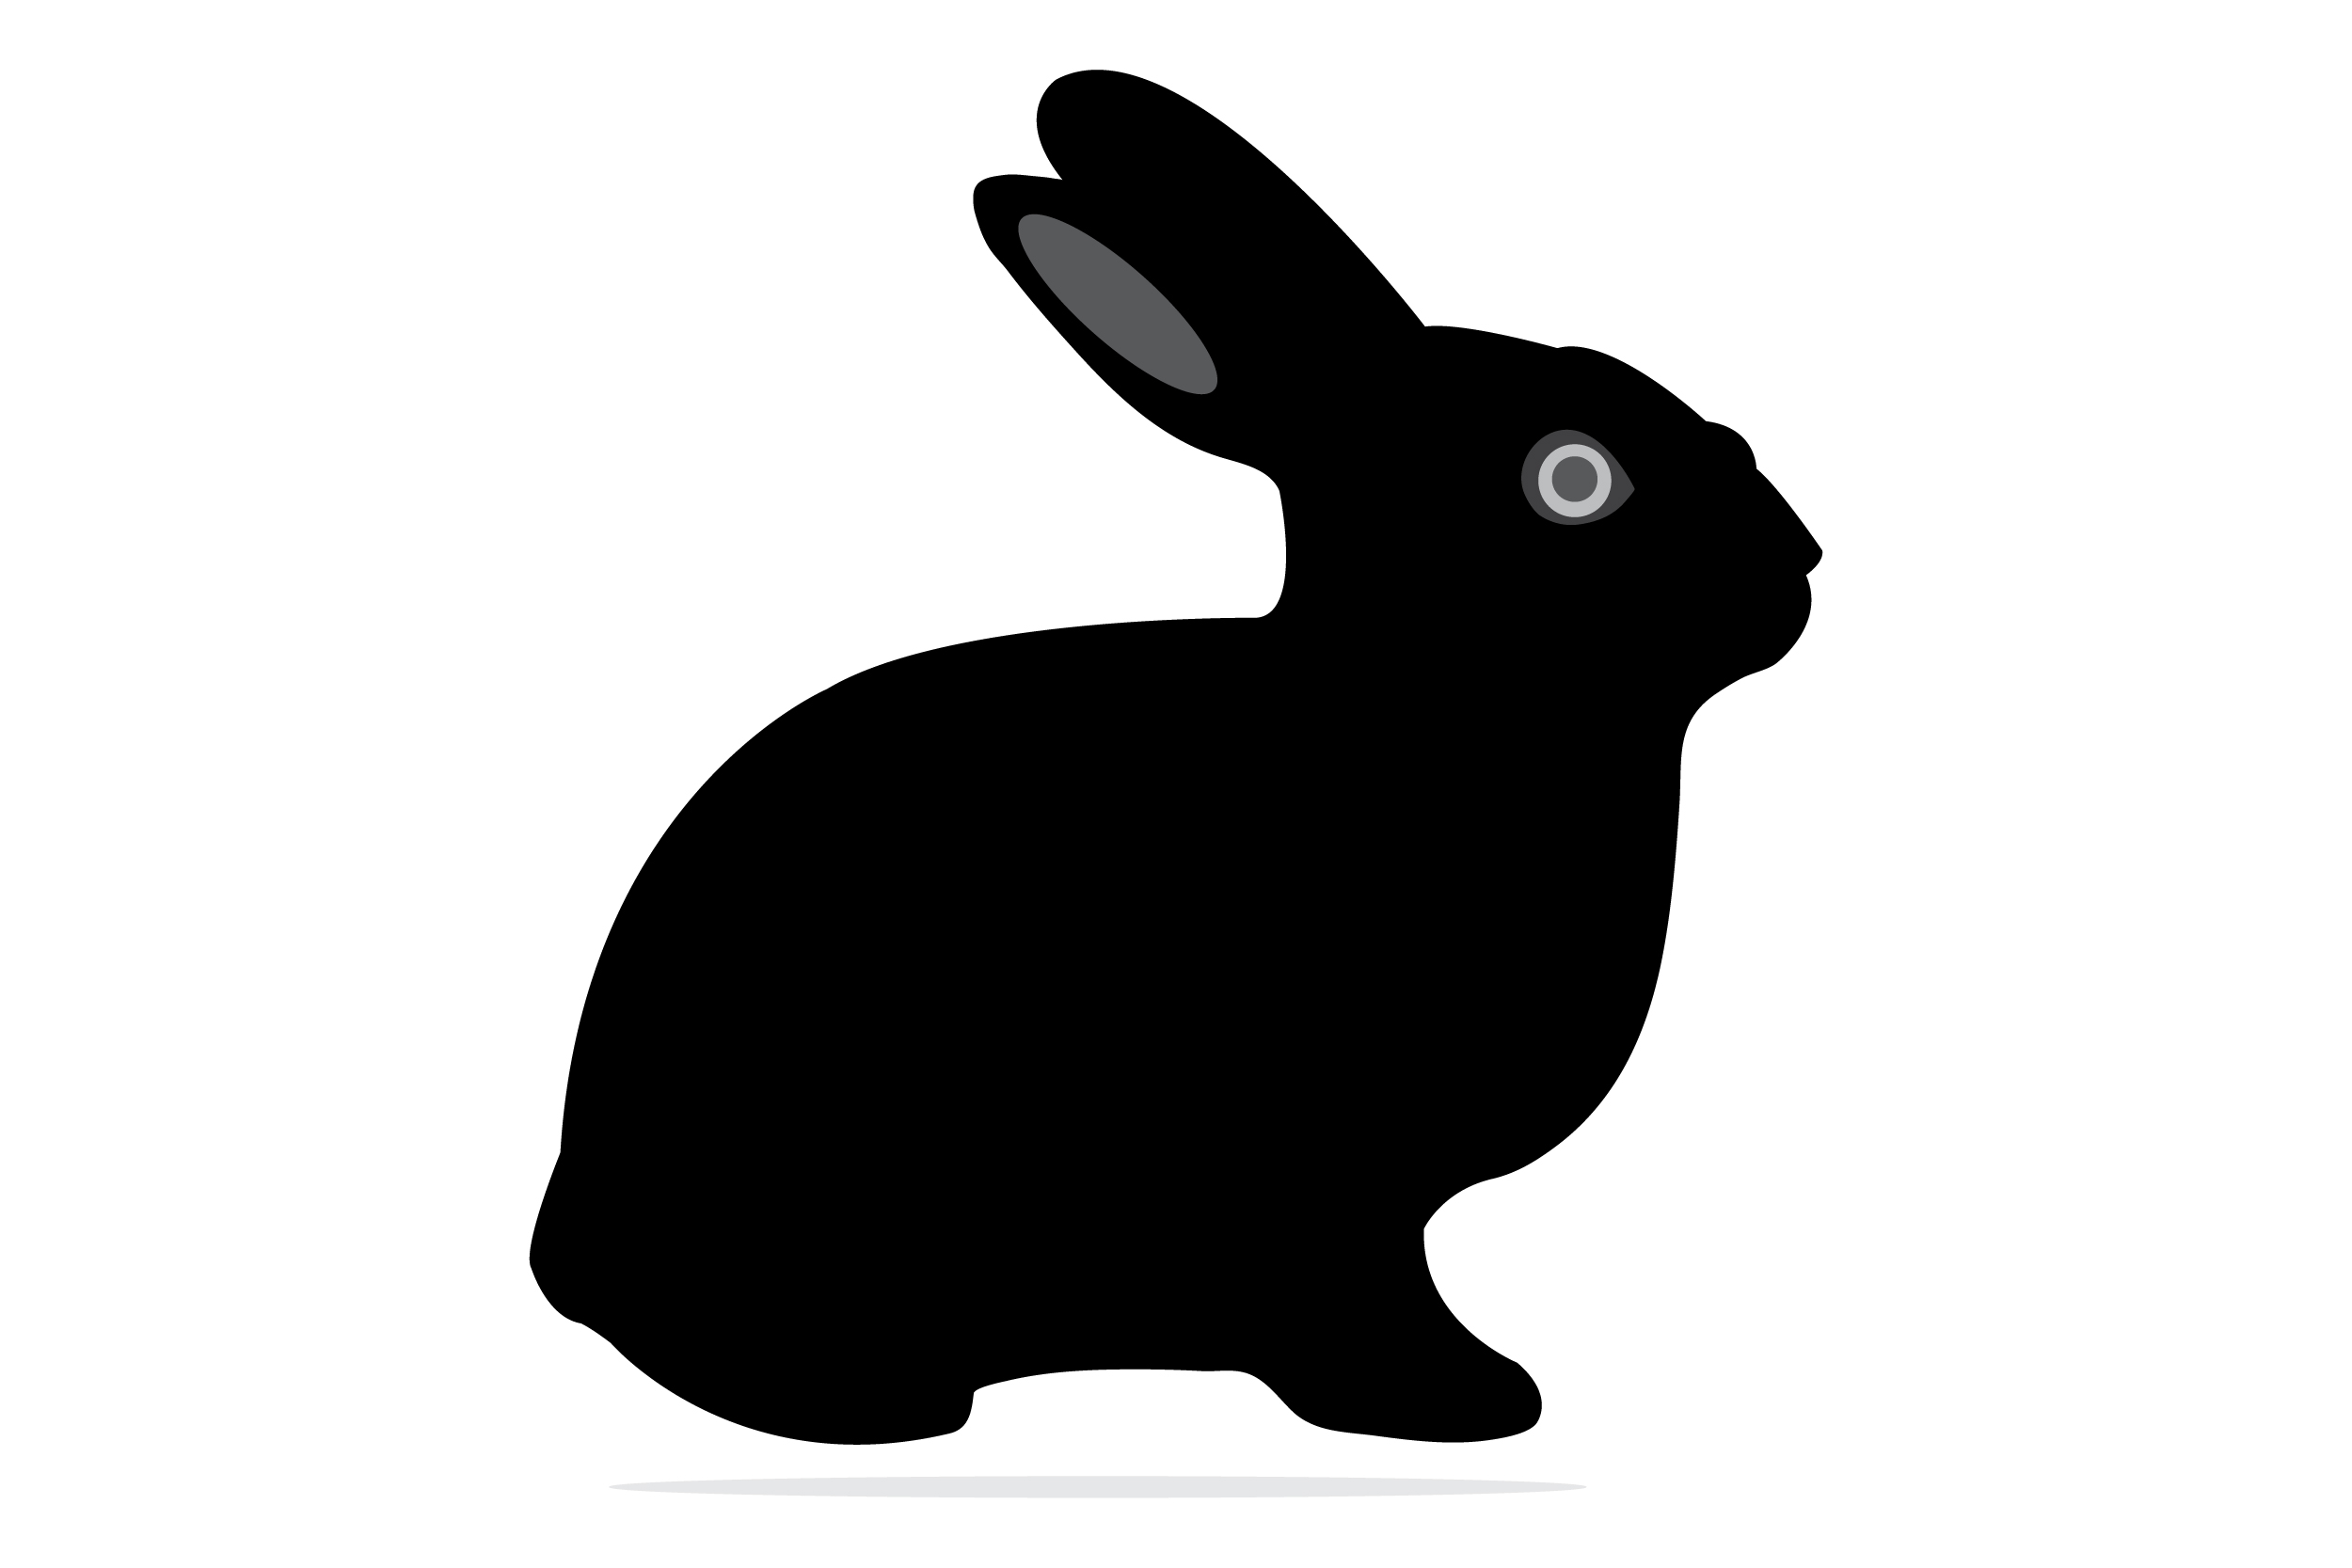 Download Free Rabbit Vector Graphic By Wheelytinarha97 Creative Fabrica for Cricut Explore, Silhouette and other cutting machines.